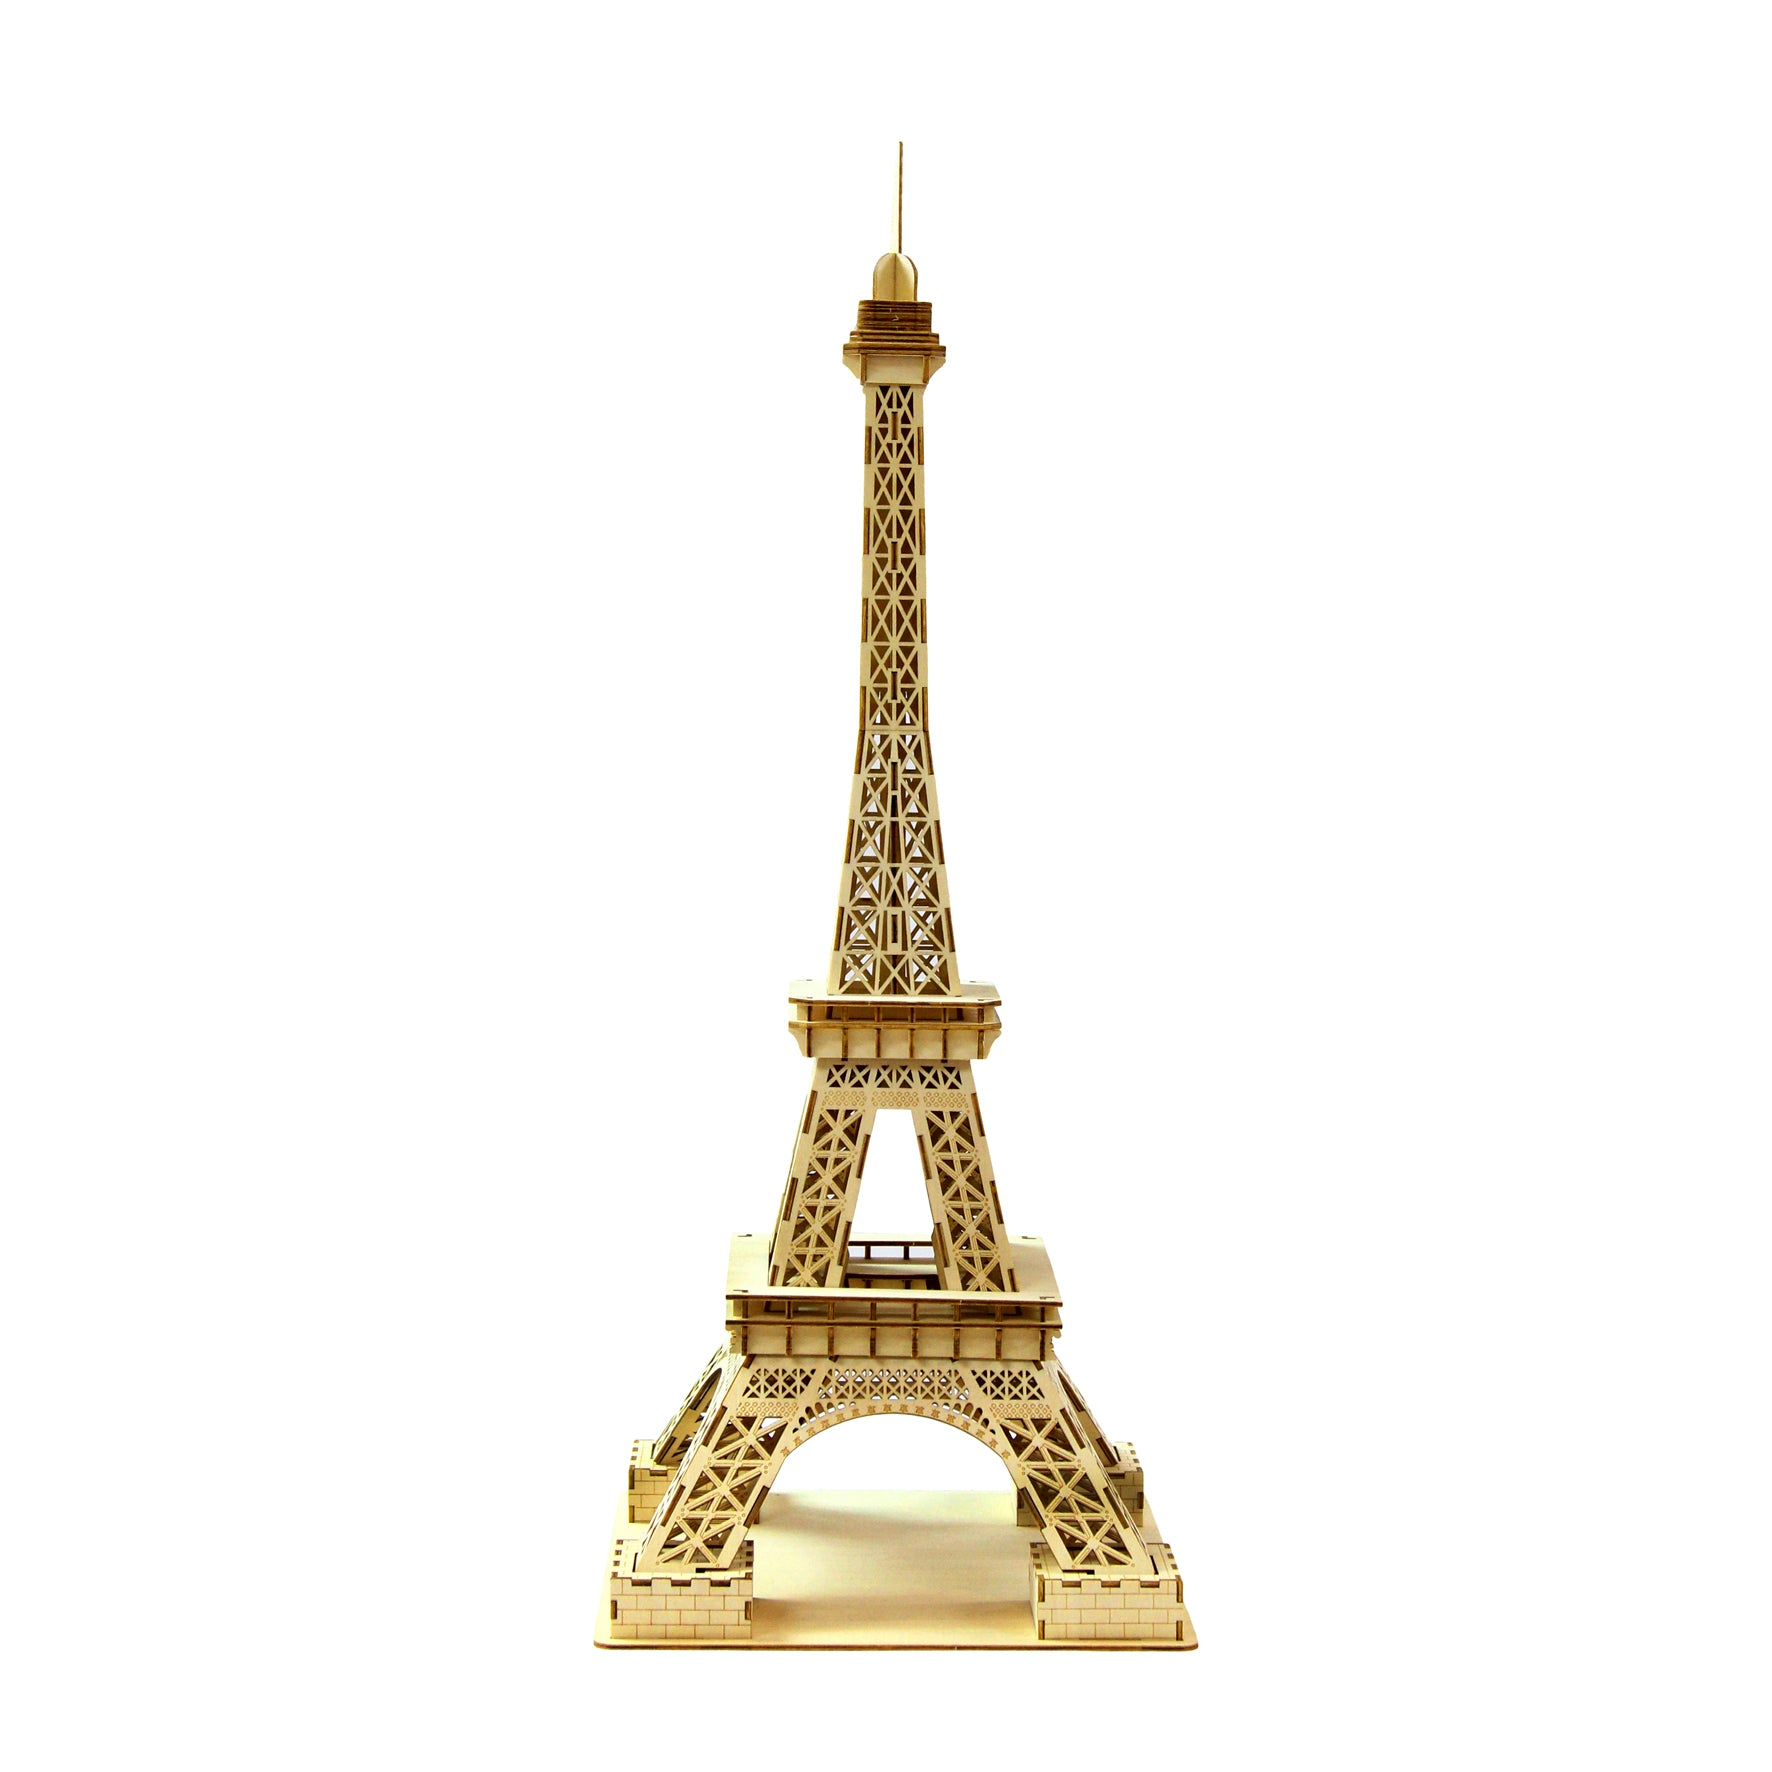 Puzzle 3D madera Jigzle – Eiffel Tower large